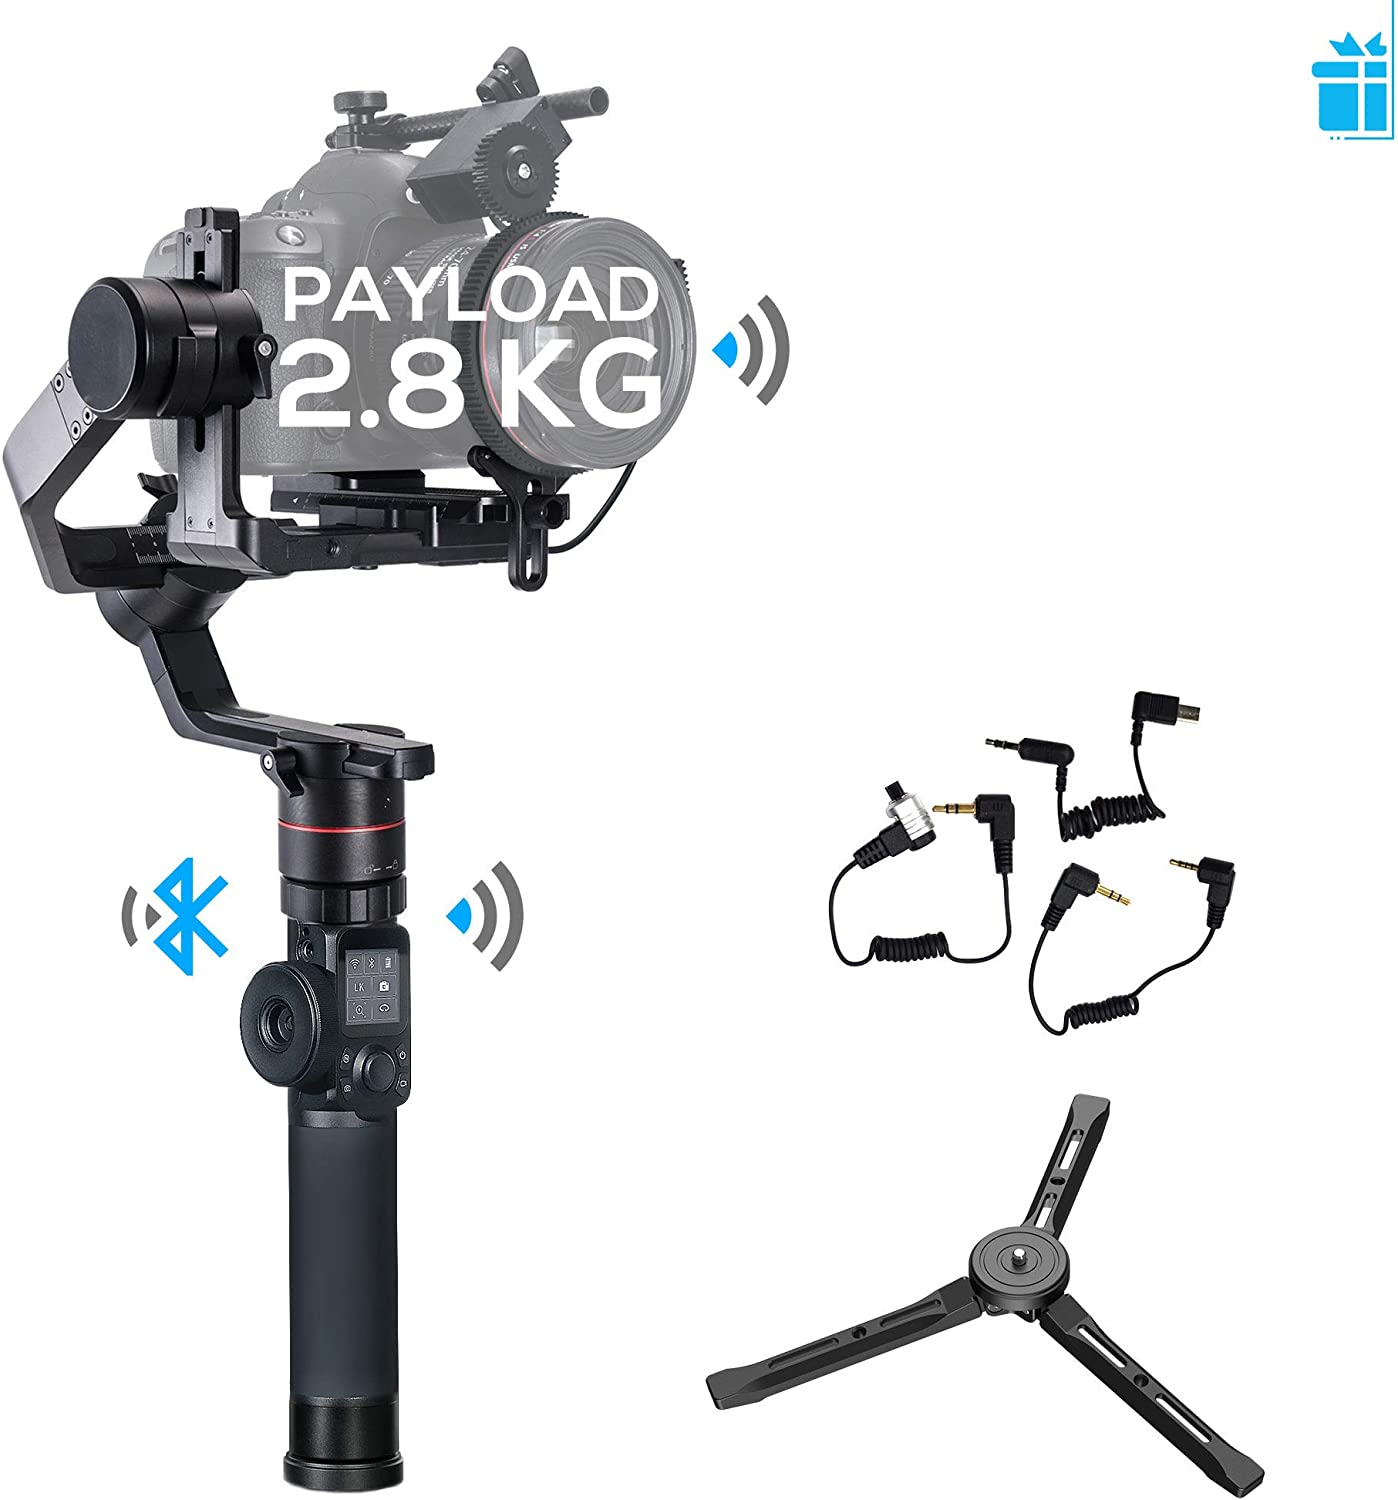 FeiyuTech Feiyu AK2000 3-Axis Handheld Gimbal Stabilizer with LCD Touch Panel Compatible with Canon/Panasonic/Sony/Nikon Cameras, MAX Payload 6.17 LB, M4 Kernel MCU